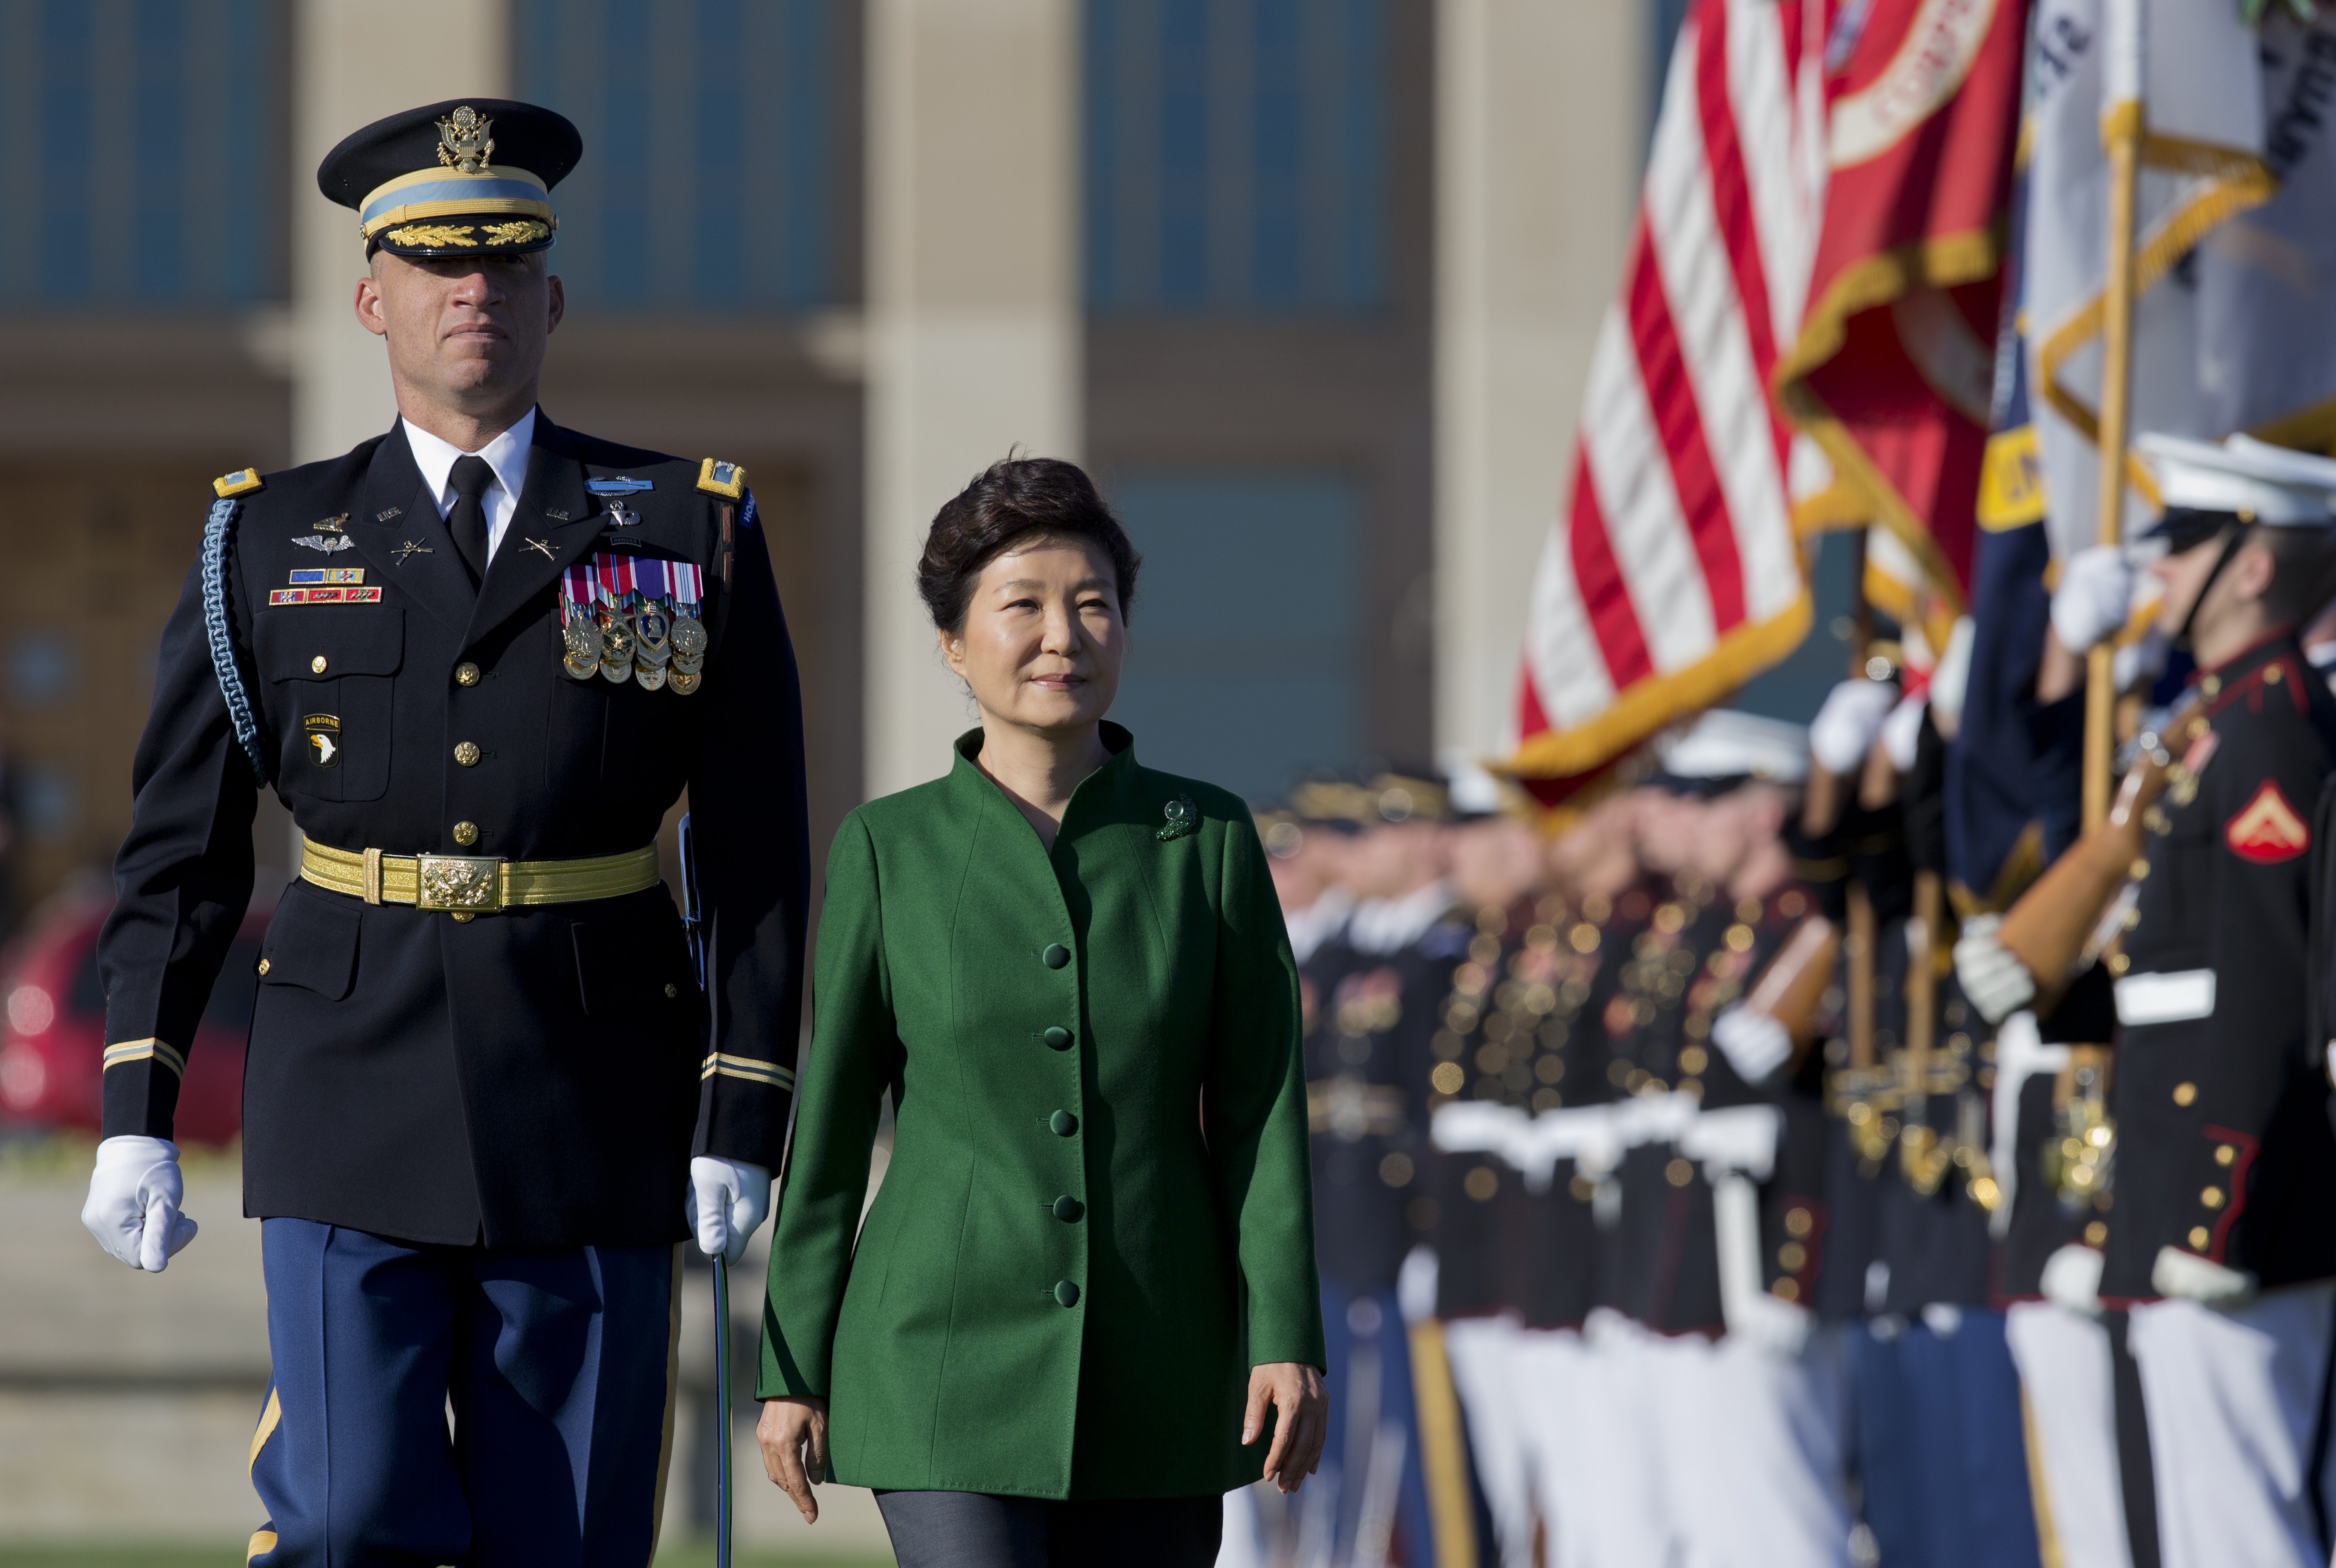 South Korean President Park Geun-hye second form left, reviews the troops during a full military honors parade to welcome her, Oct. 15, 2015, at the Pentagon.